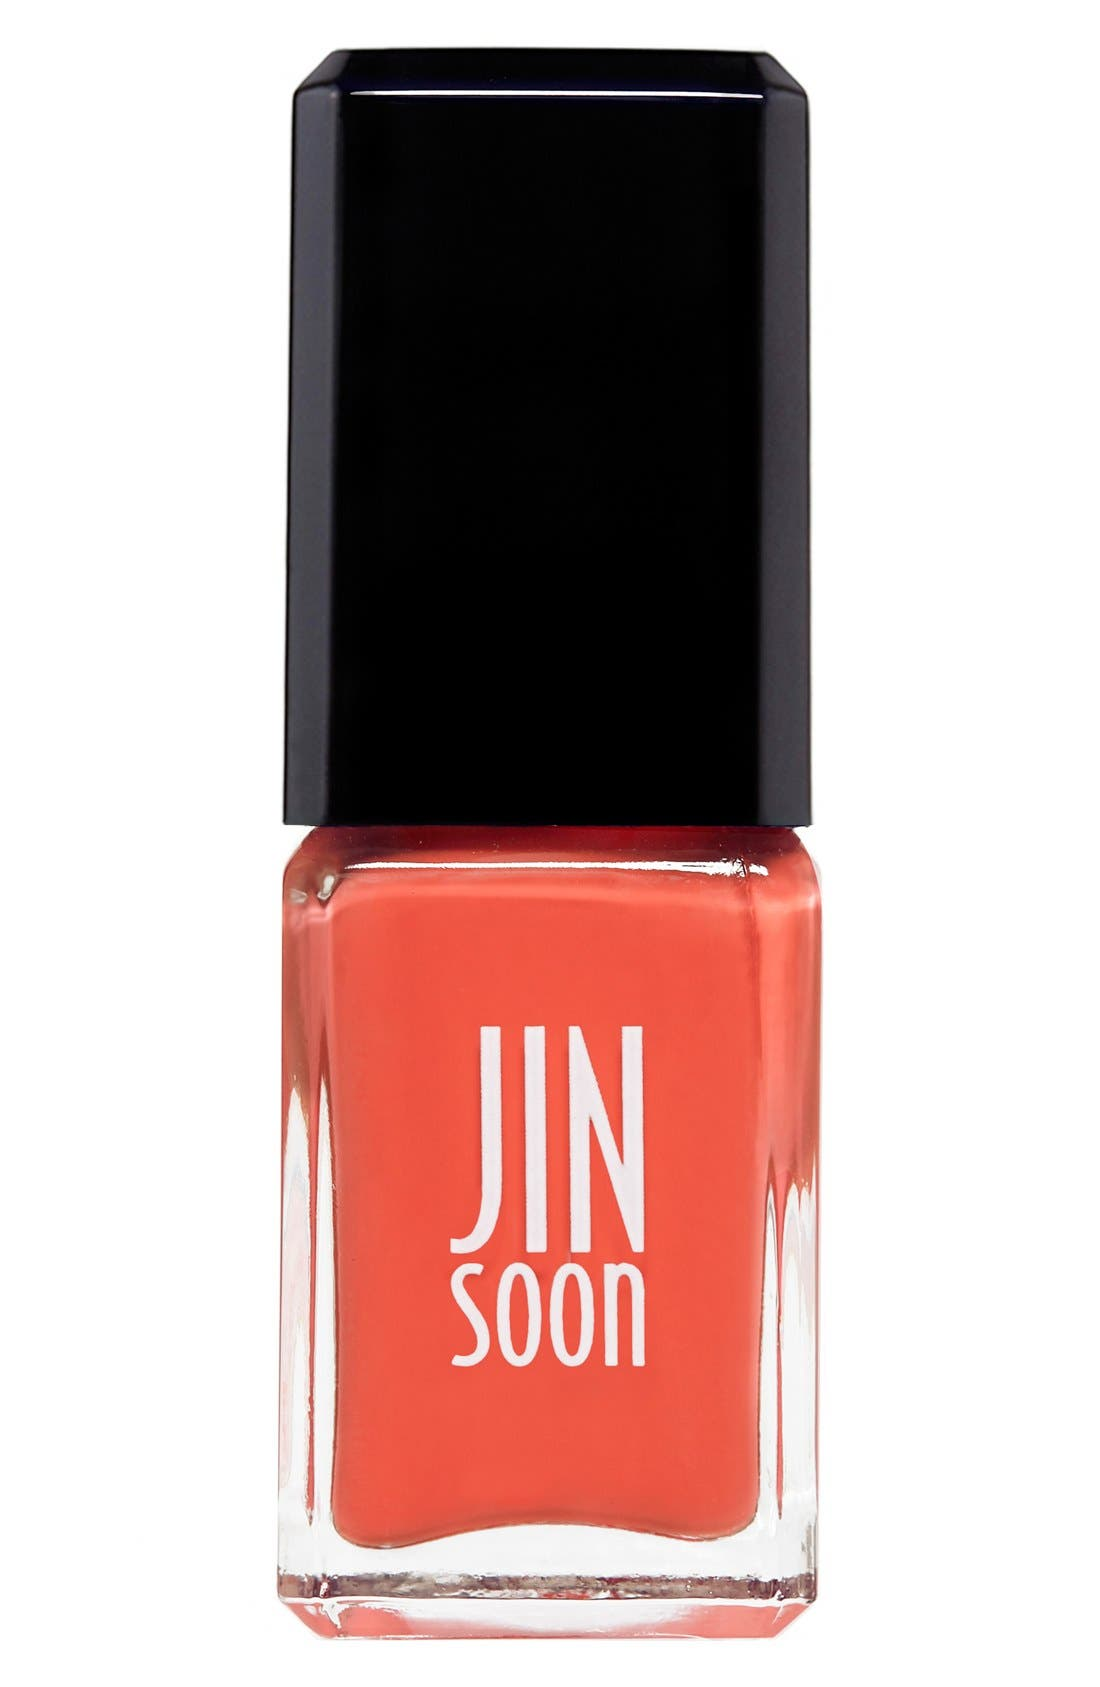 JINsoon 'Painted Ladies' Nail Lacquer